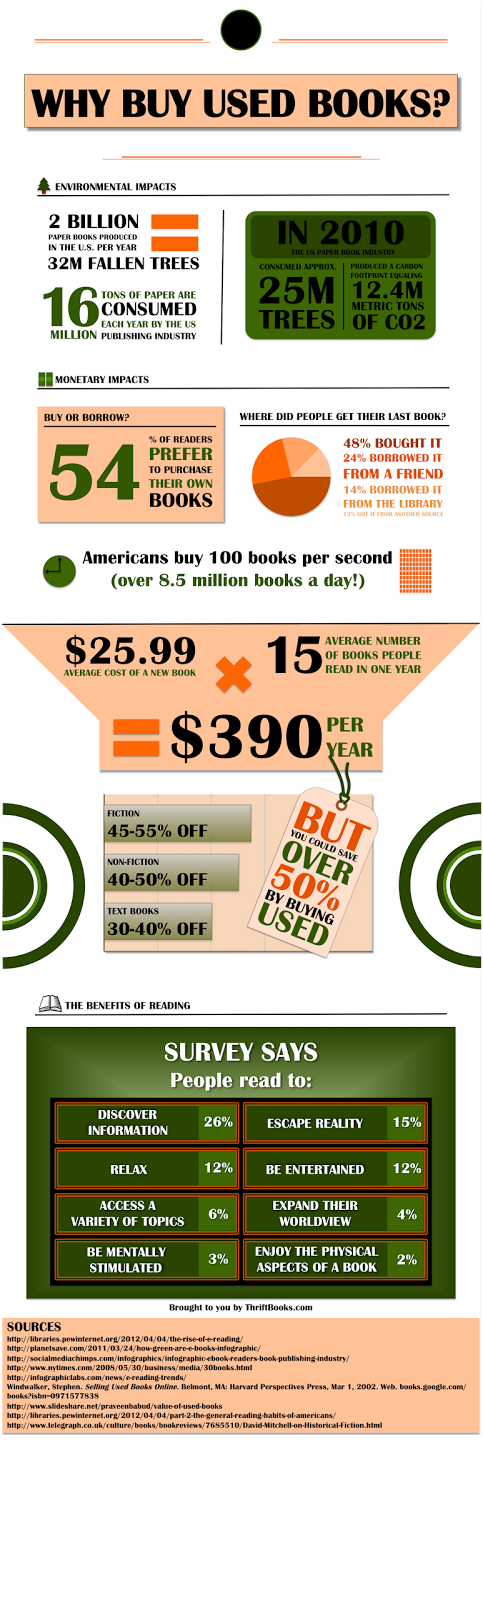 Why Buy Used Books - TB - graphic